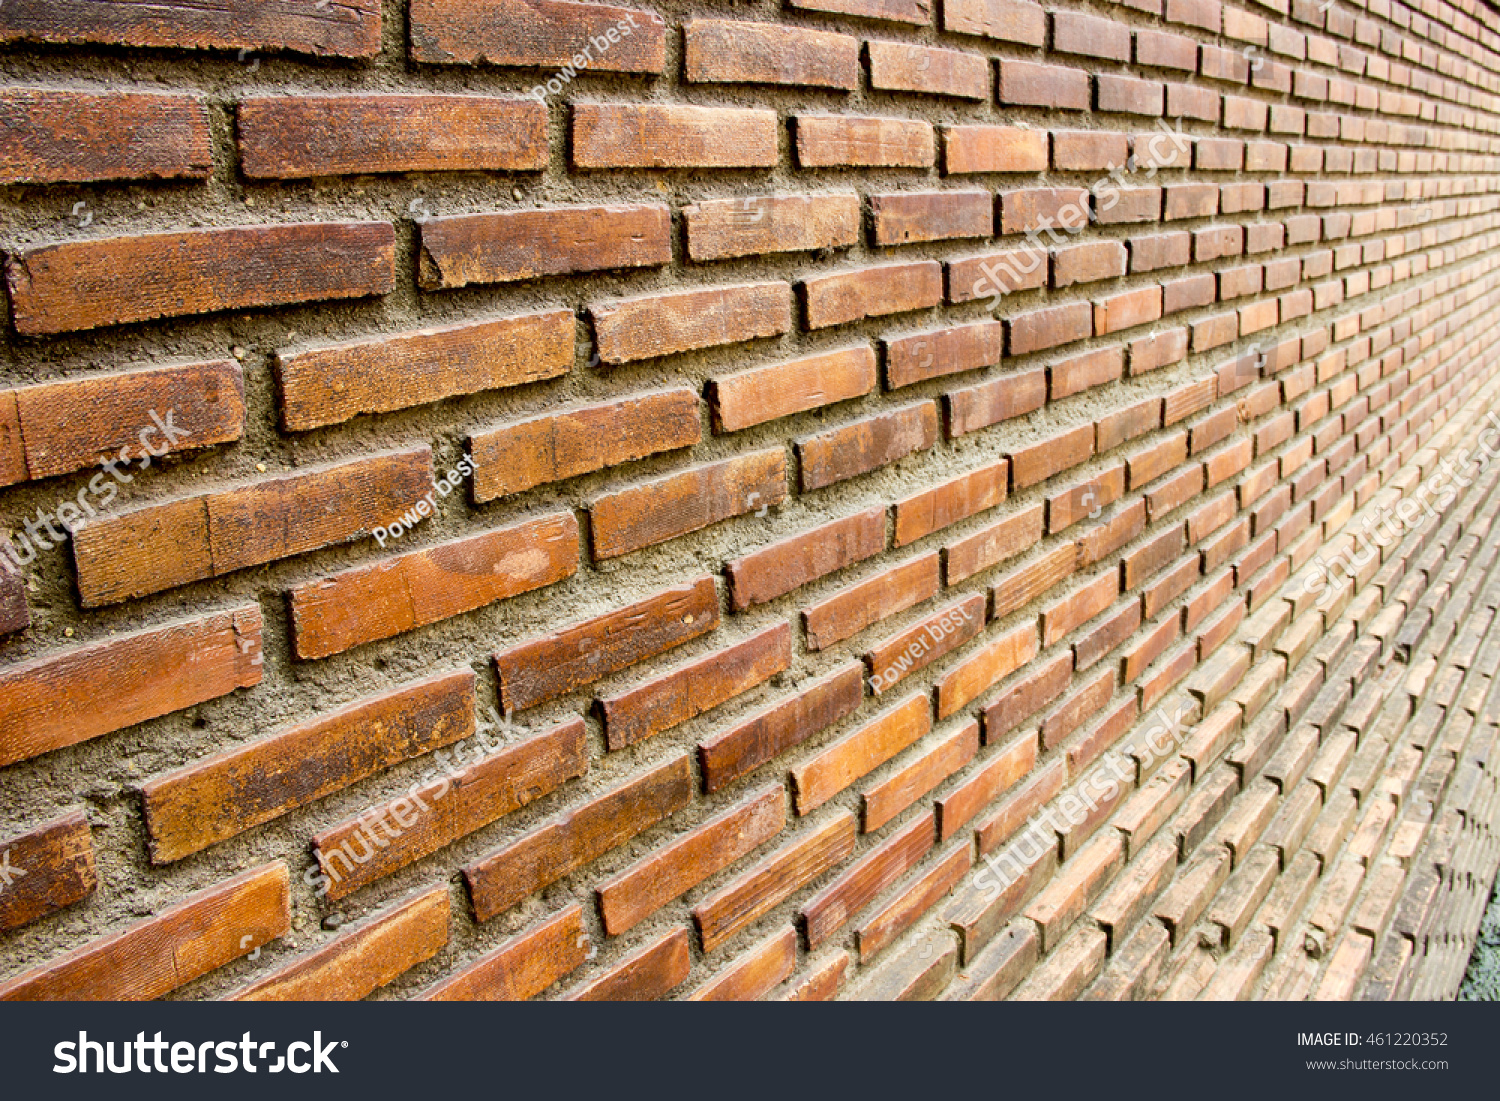 Background of red brick wall pattern texture great for graffiti inscriptions